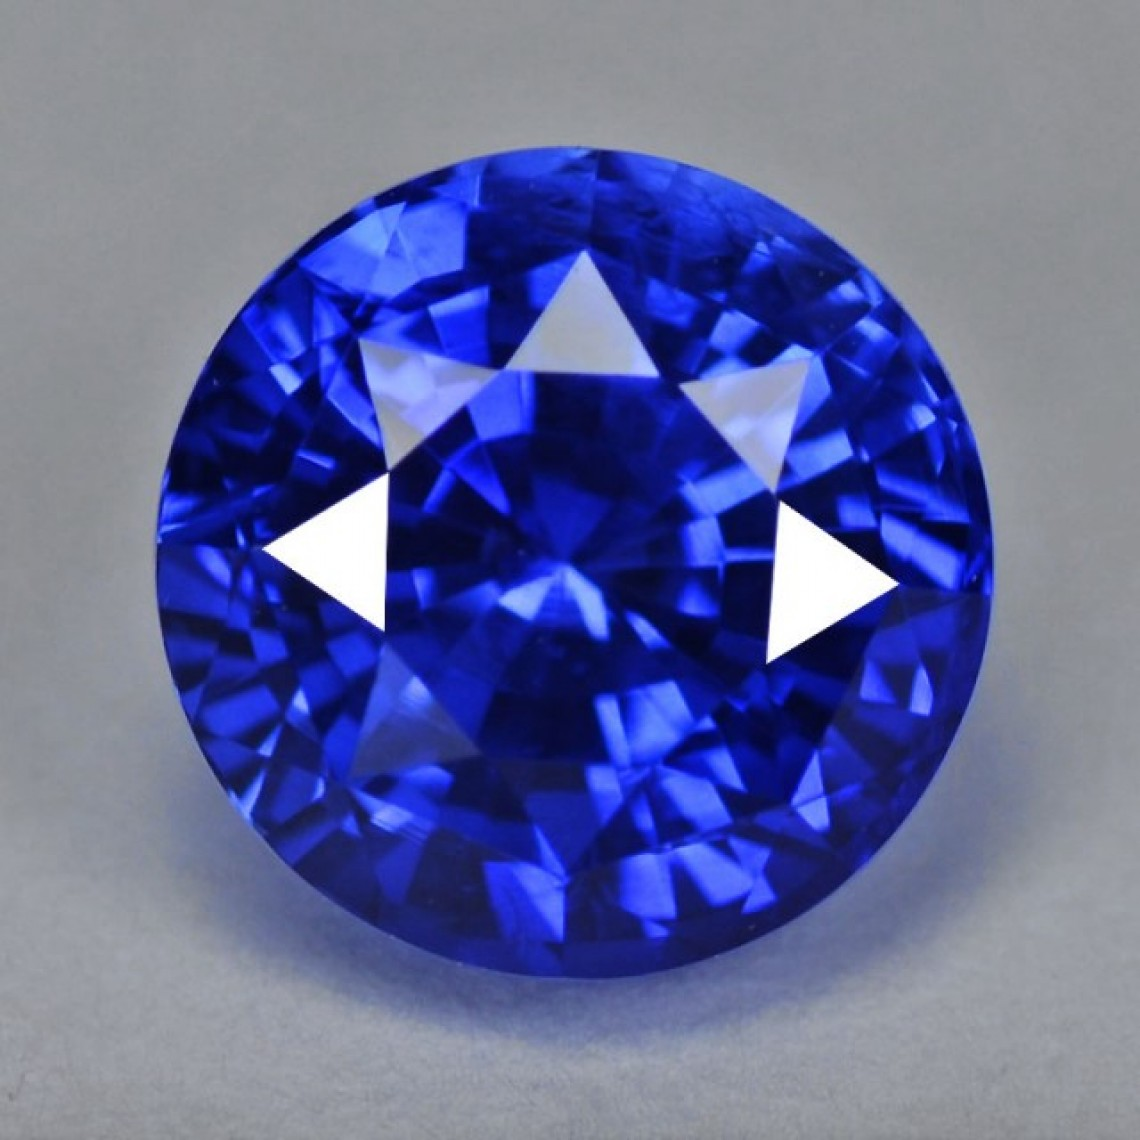 blue wp welcome and blog gemstones luck colors gems different navneetgems information content navneet a place uploads to s beauty for com great sapphire of